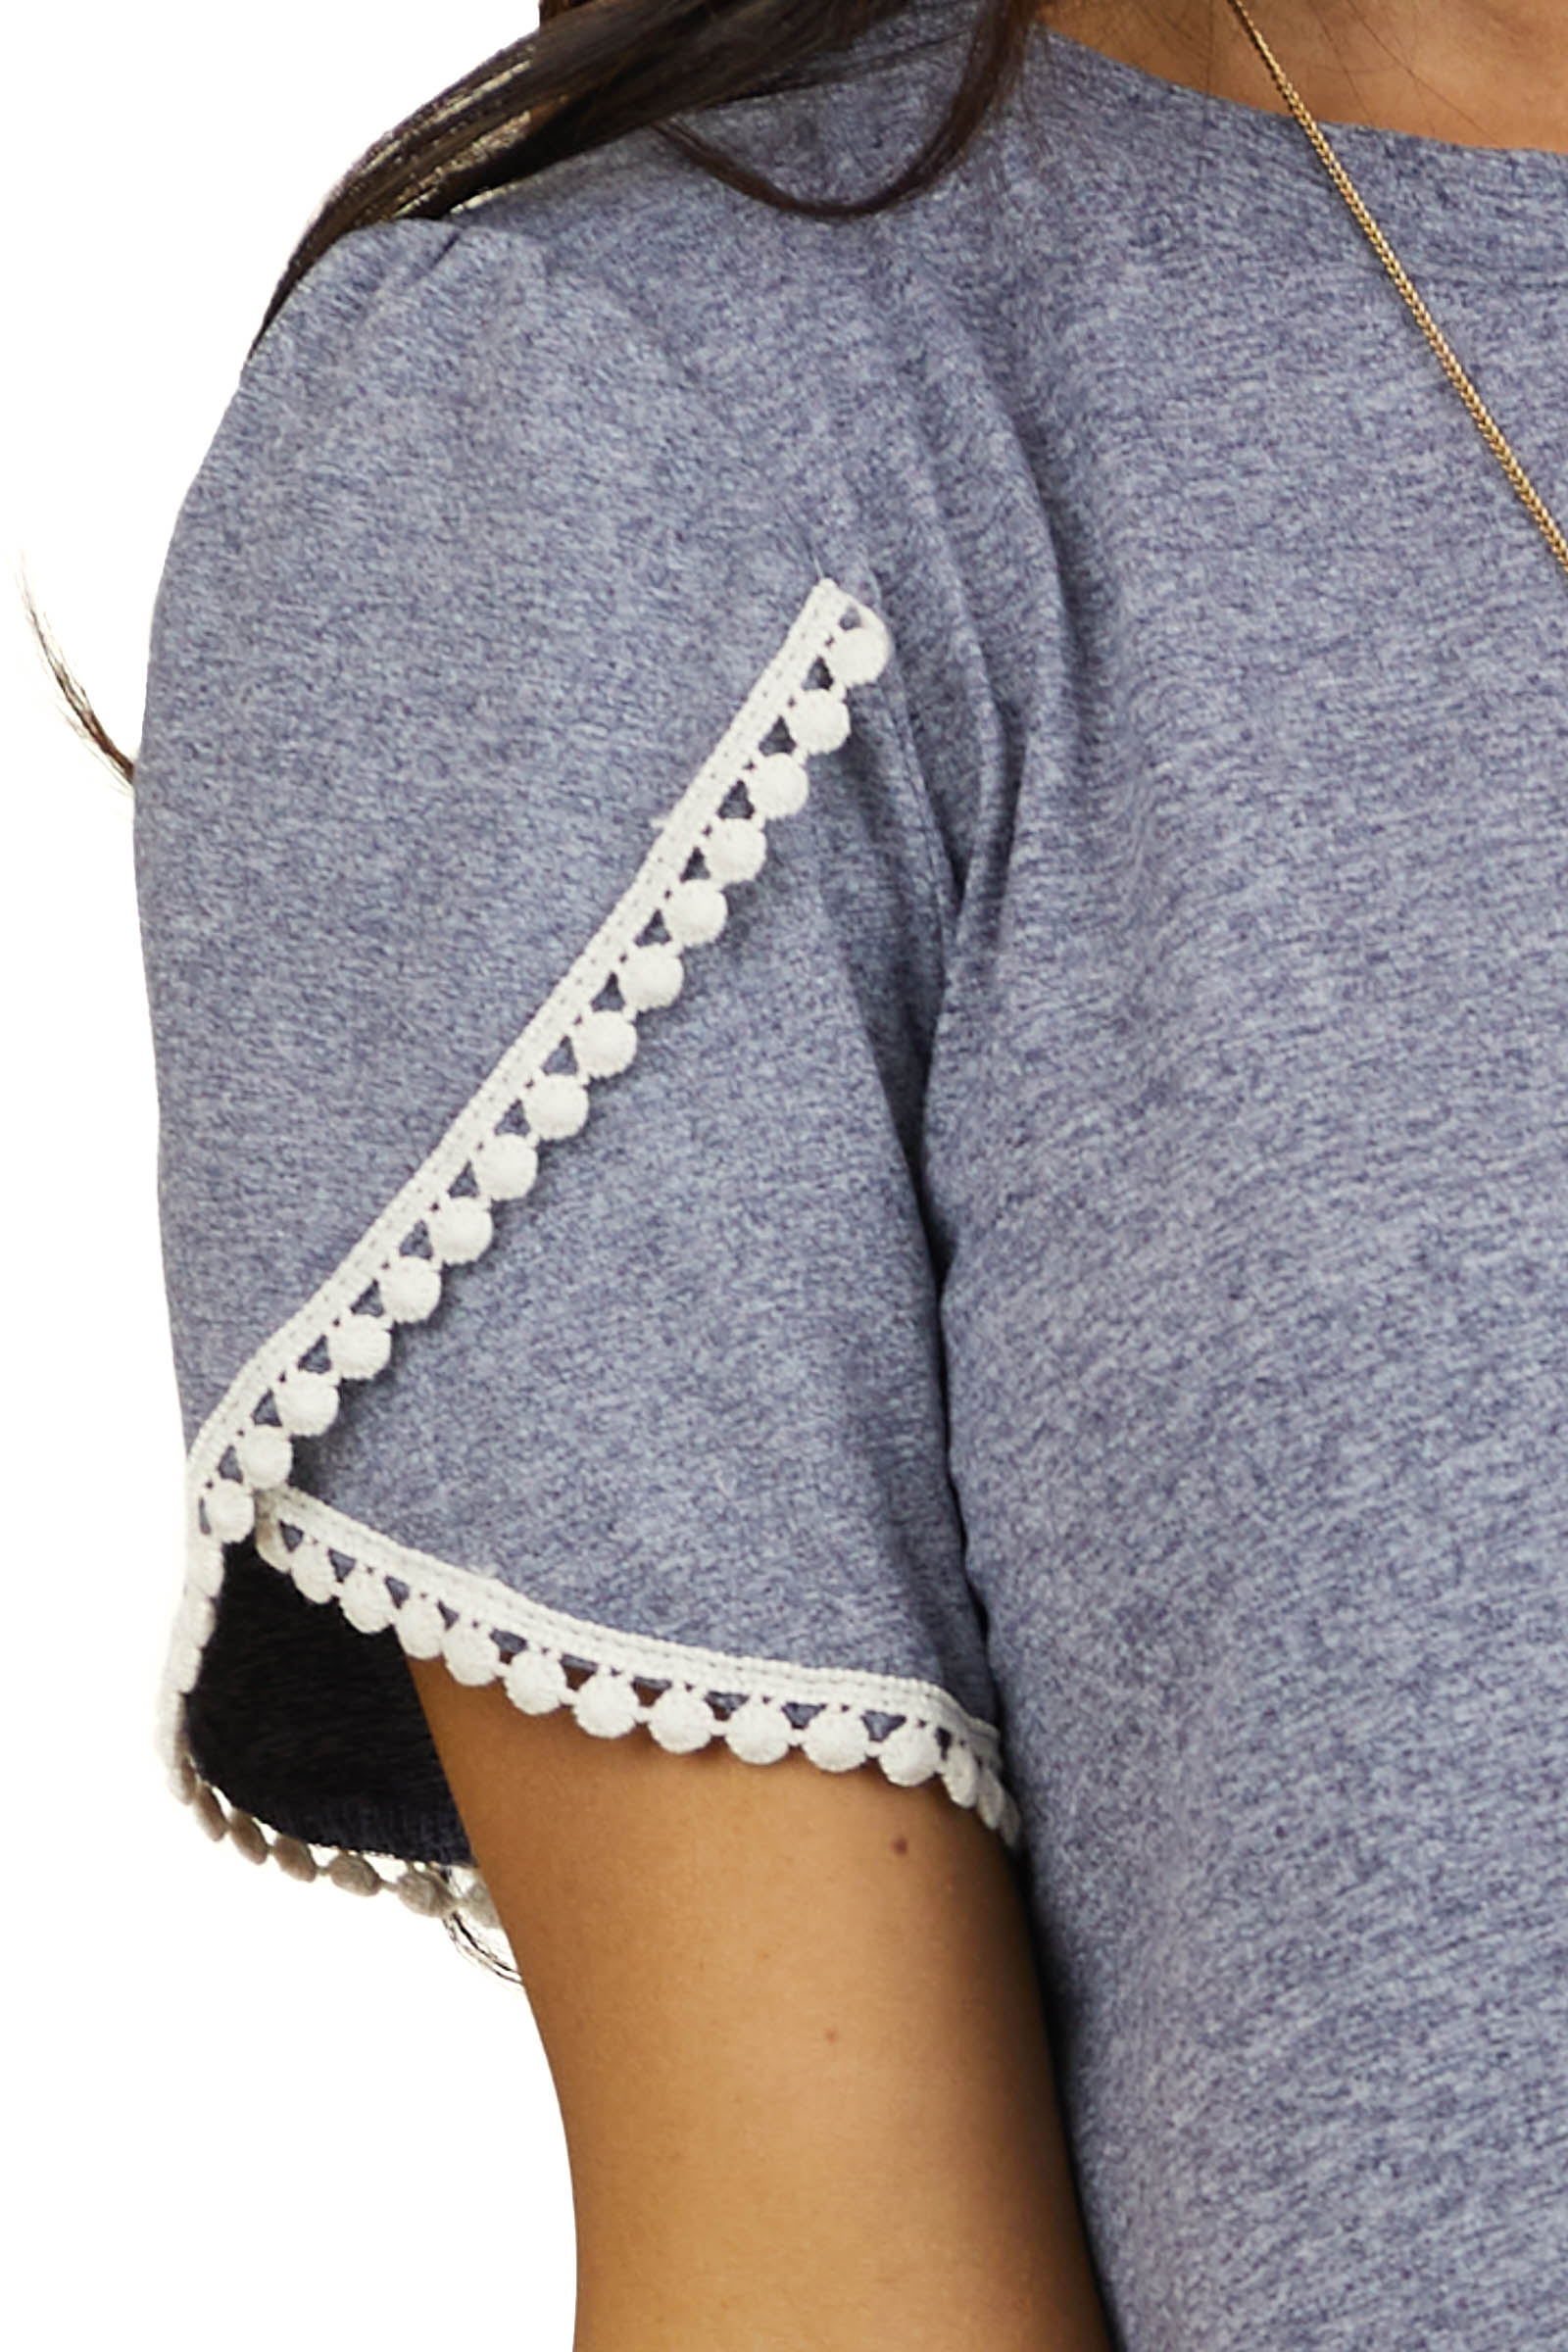 Heathered Slate Knit Top with Cream Crochet Lace Details